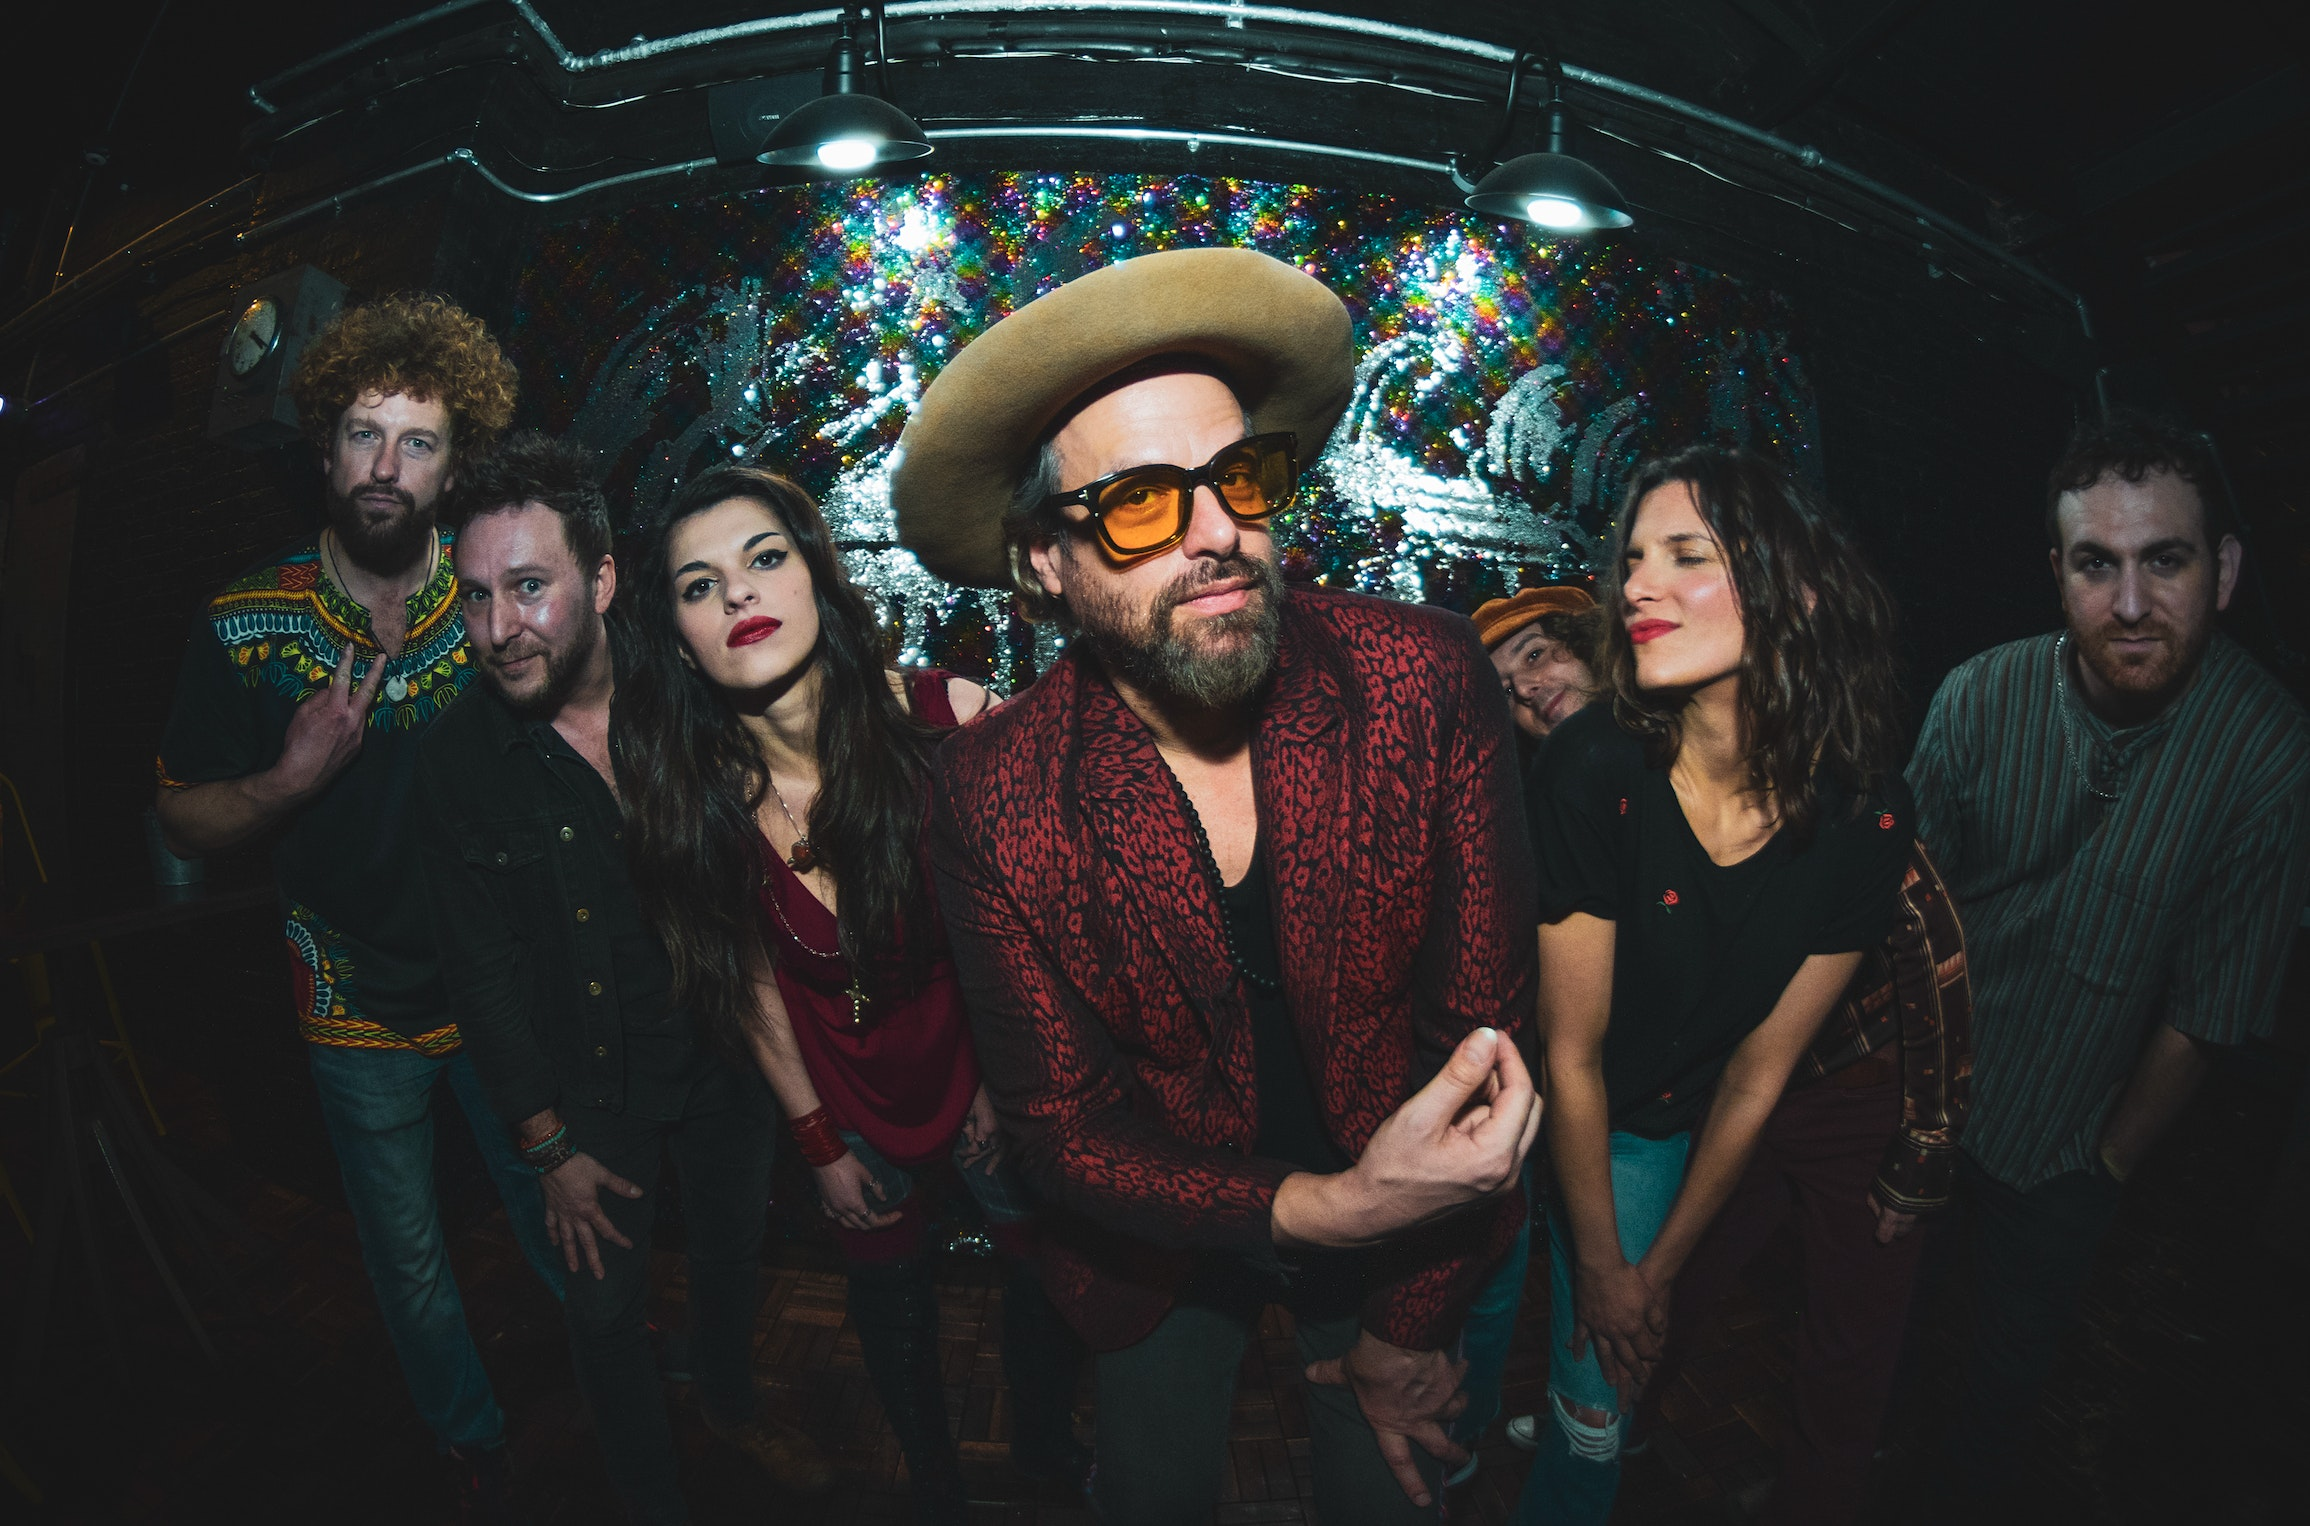 The Uprooted Band, featuring Michael Glabicki of Rusted Root